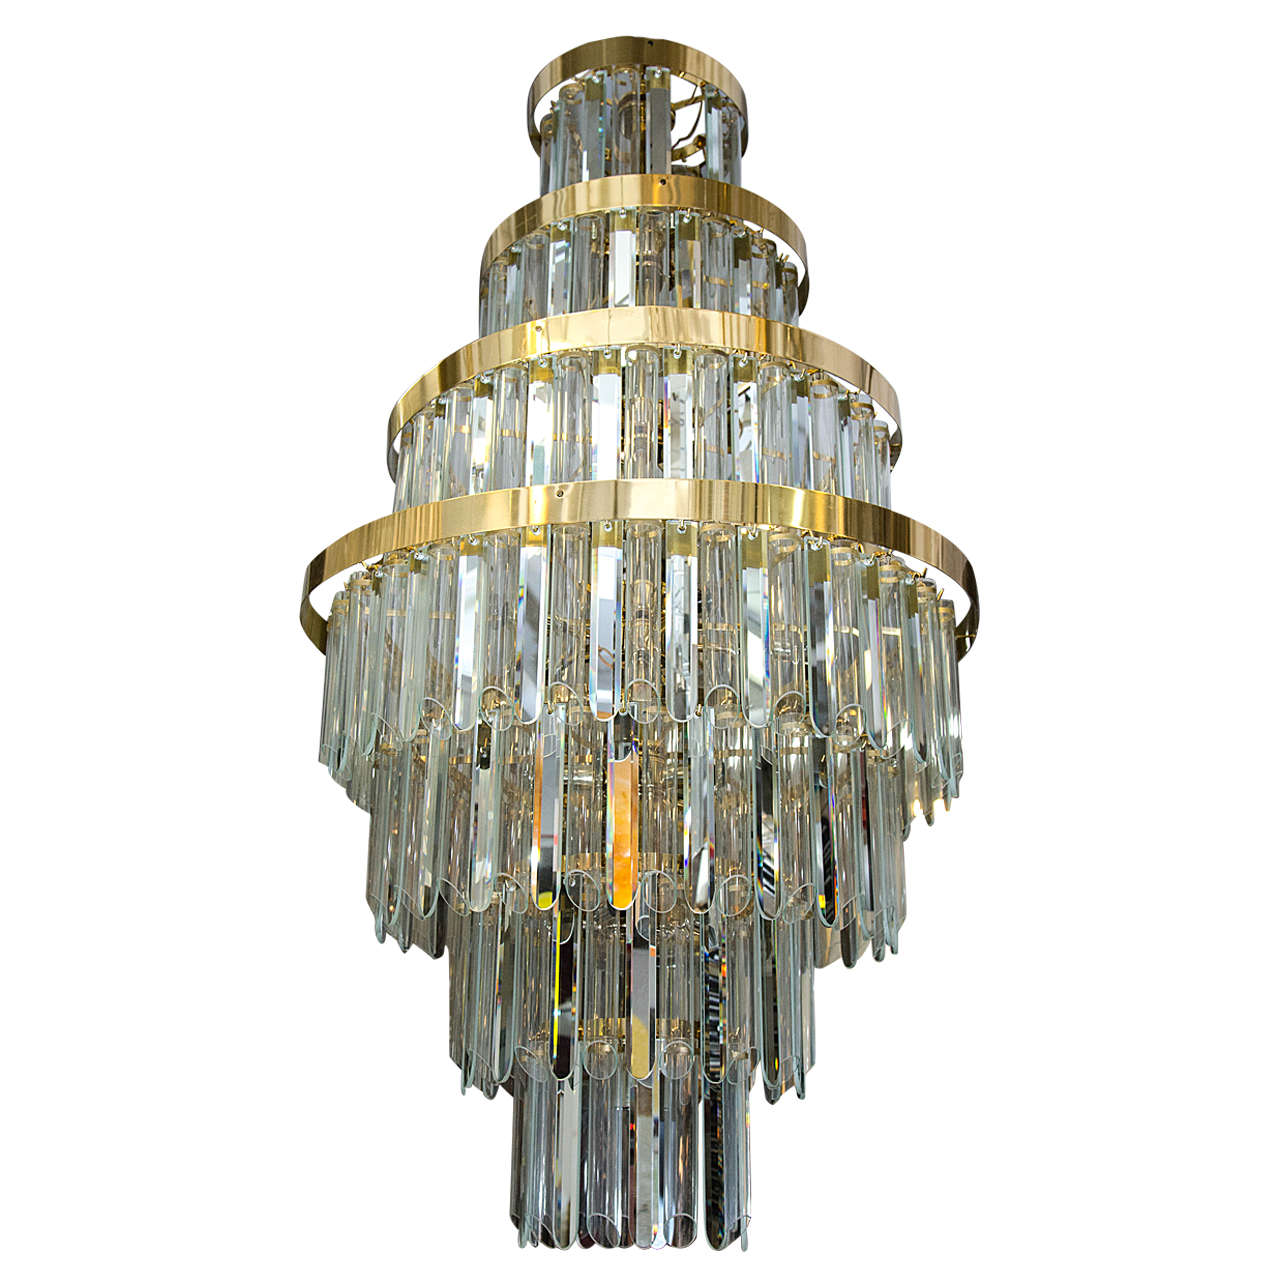 A Midcentury  Mirrored Crystal and Glass Seven-Tier Chandelier